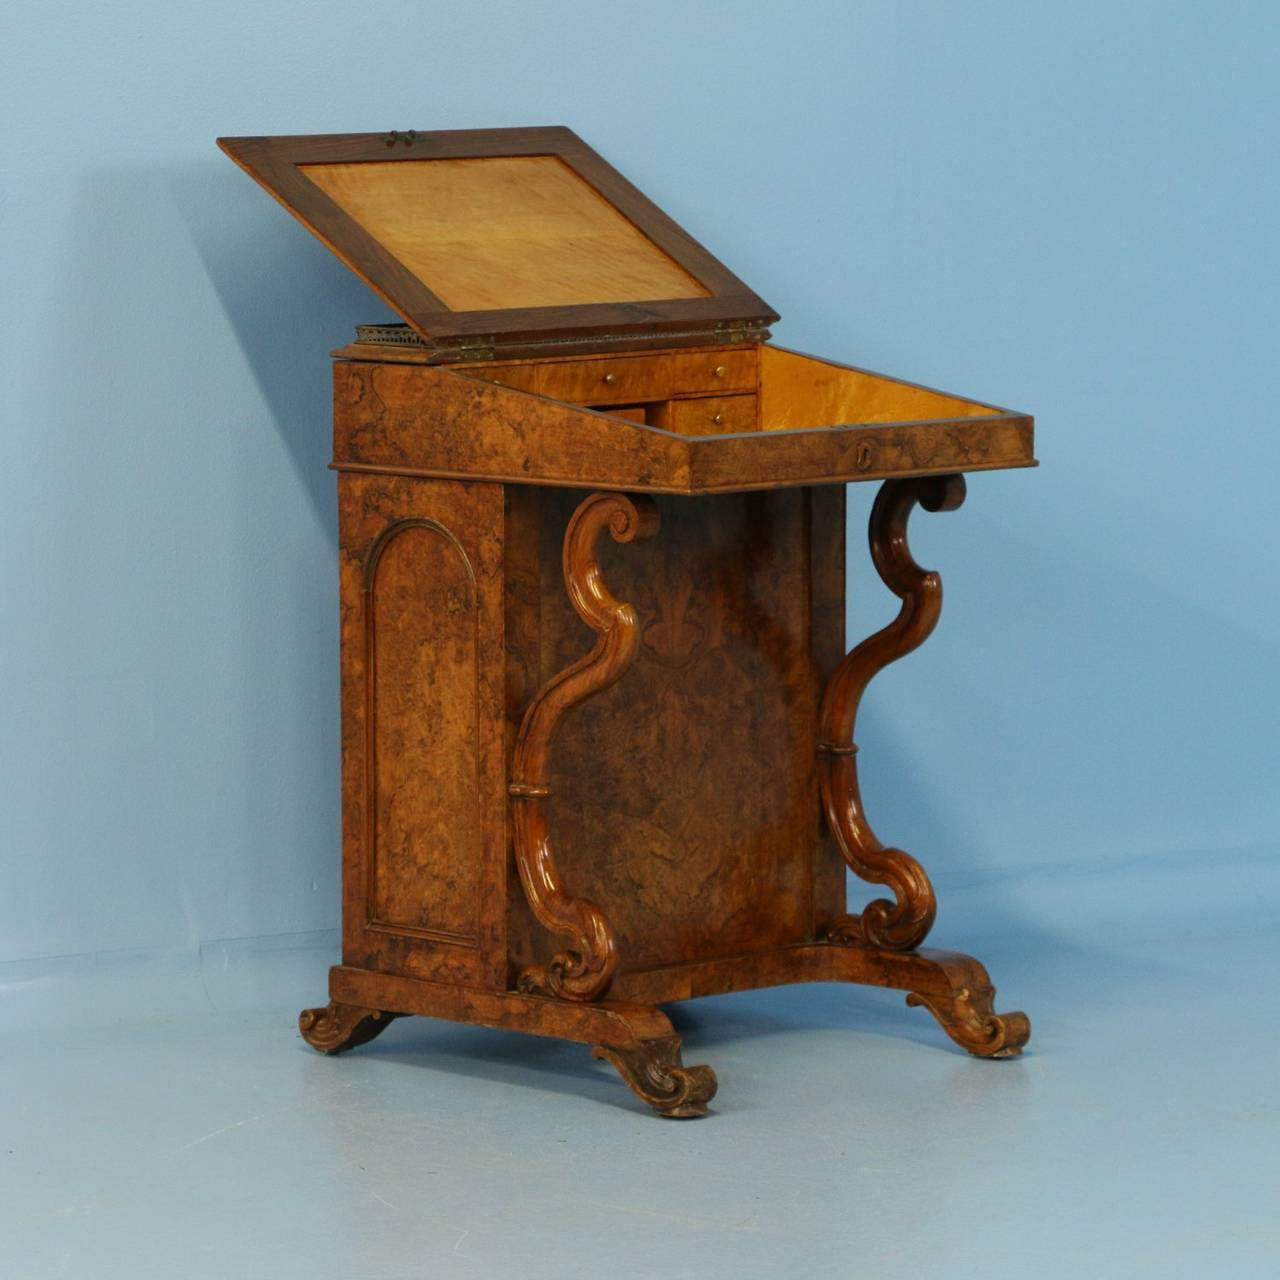 Antique English Davenport Desk, Circa 1800 3